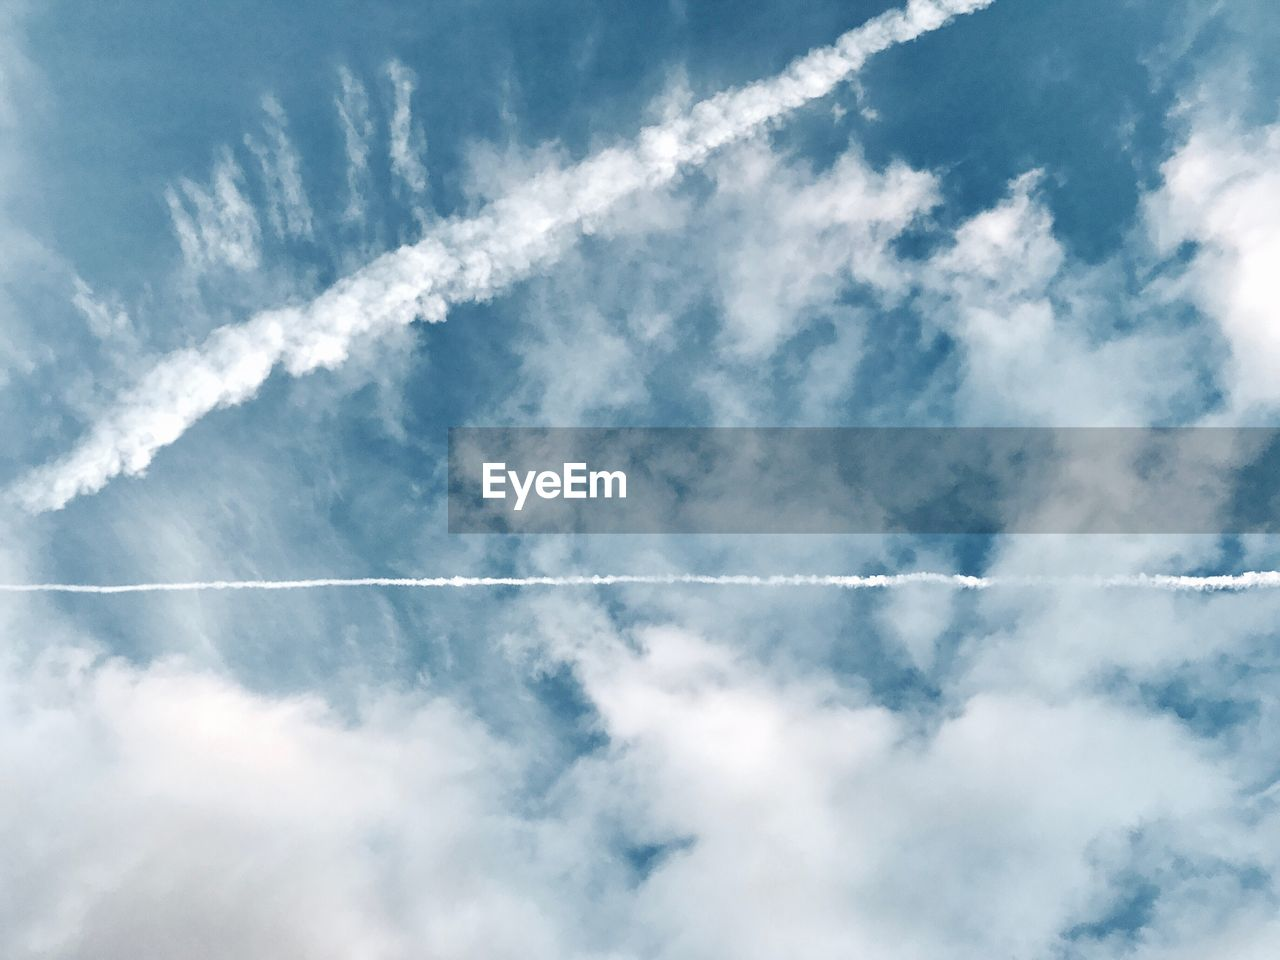 VIEW OF VAPOR TRAIL IN SKY